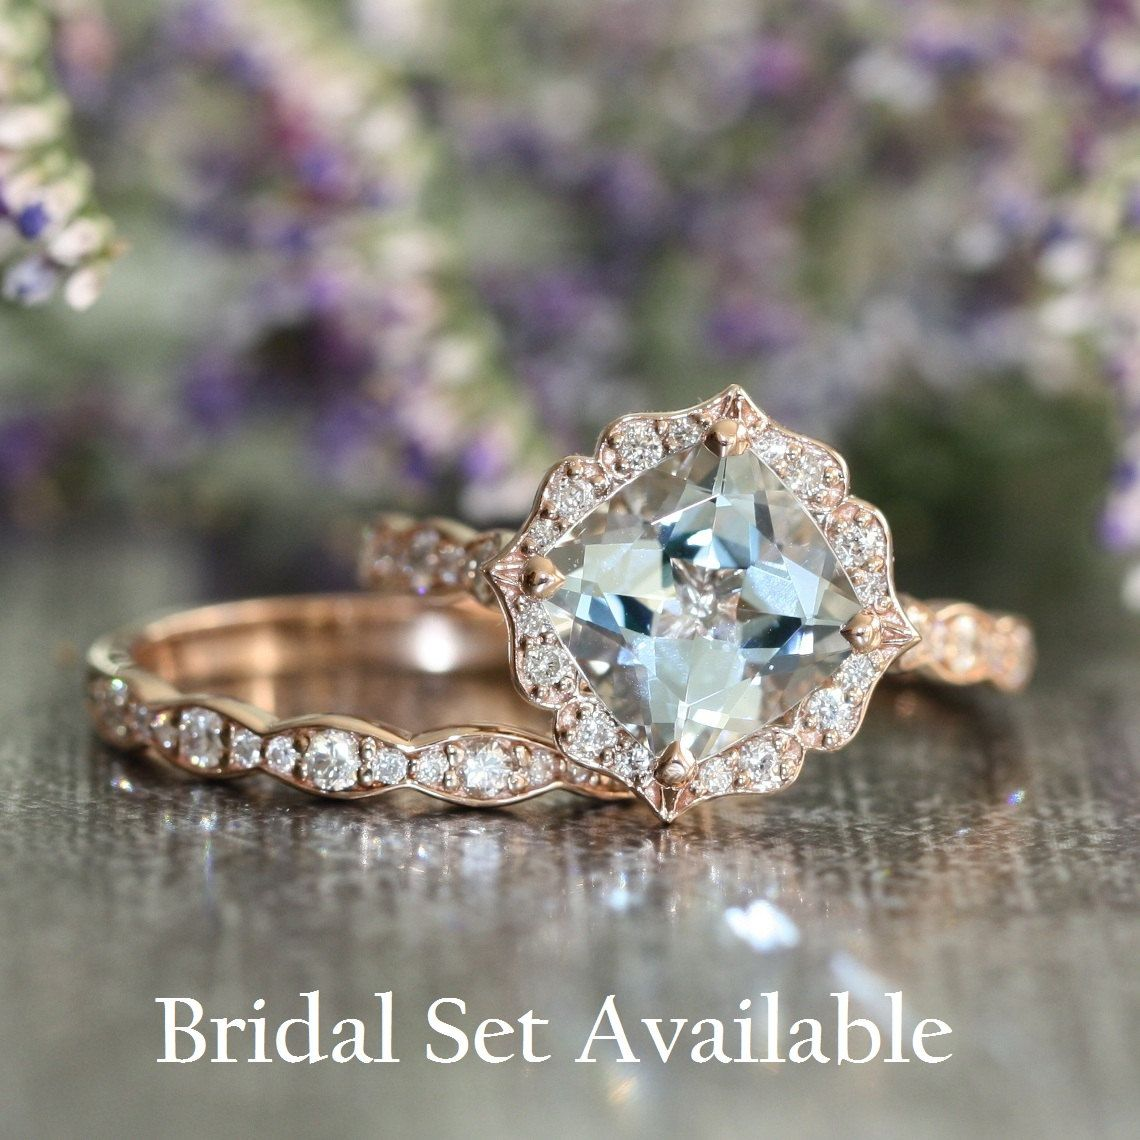 natural emerald jewelry engagement pricegems color stone gold cut inc store ring aquamarine rings home gem white diamond